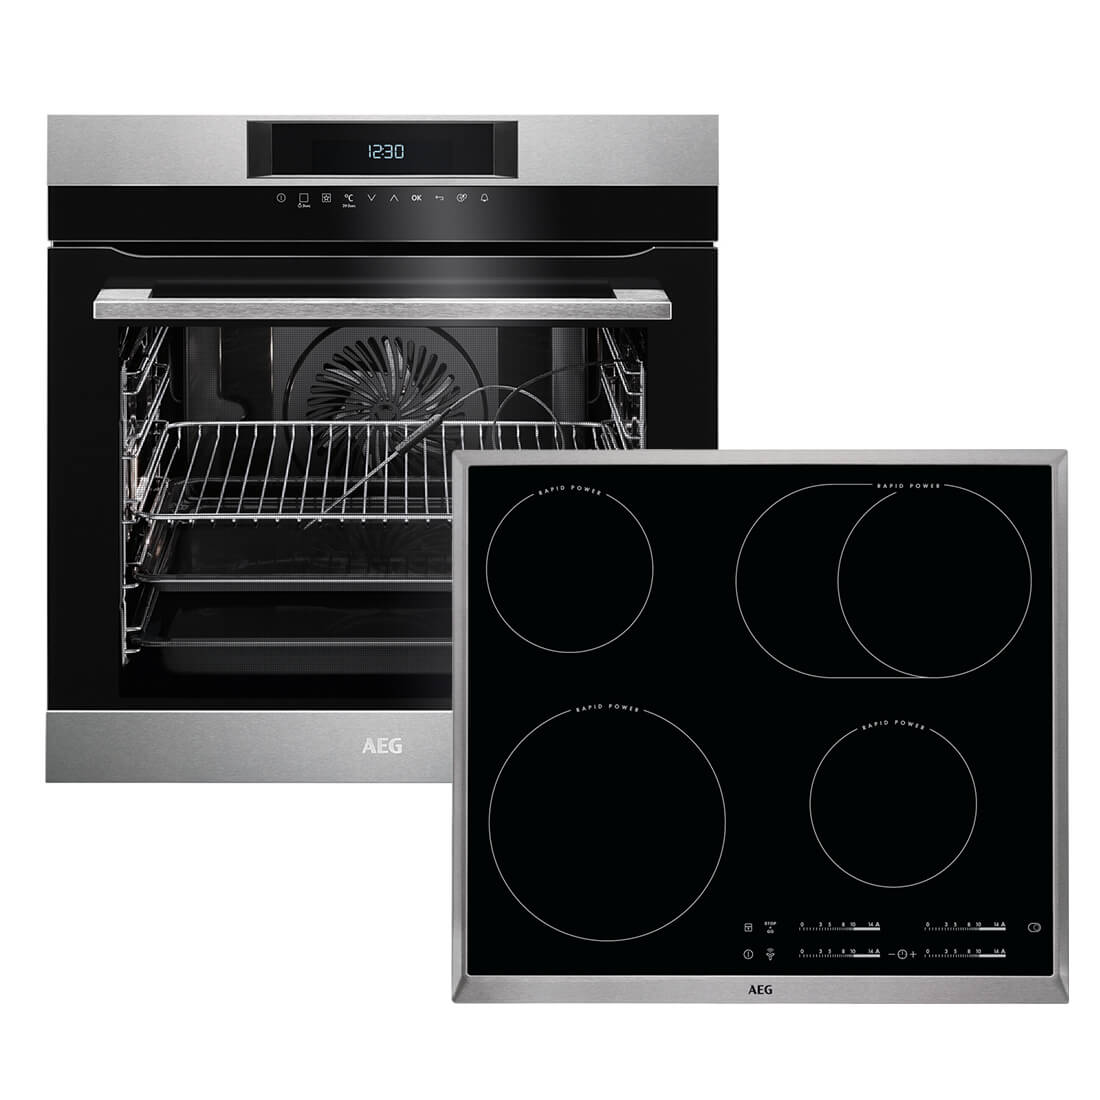 aeg bpk742 backofen set bpk742220m backofen hk654850x. Black Bedroom Furniture Sets. Home Design Ideas